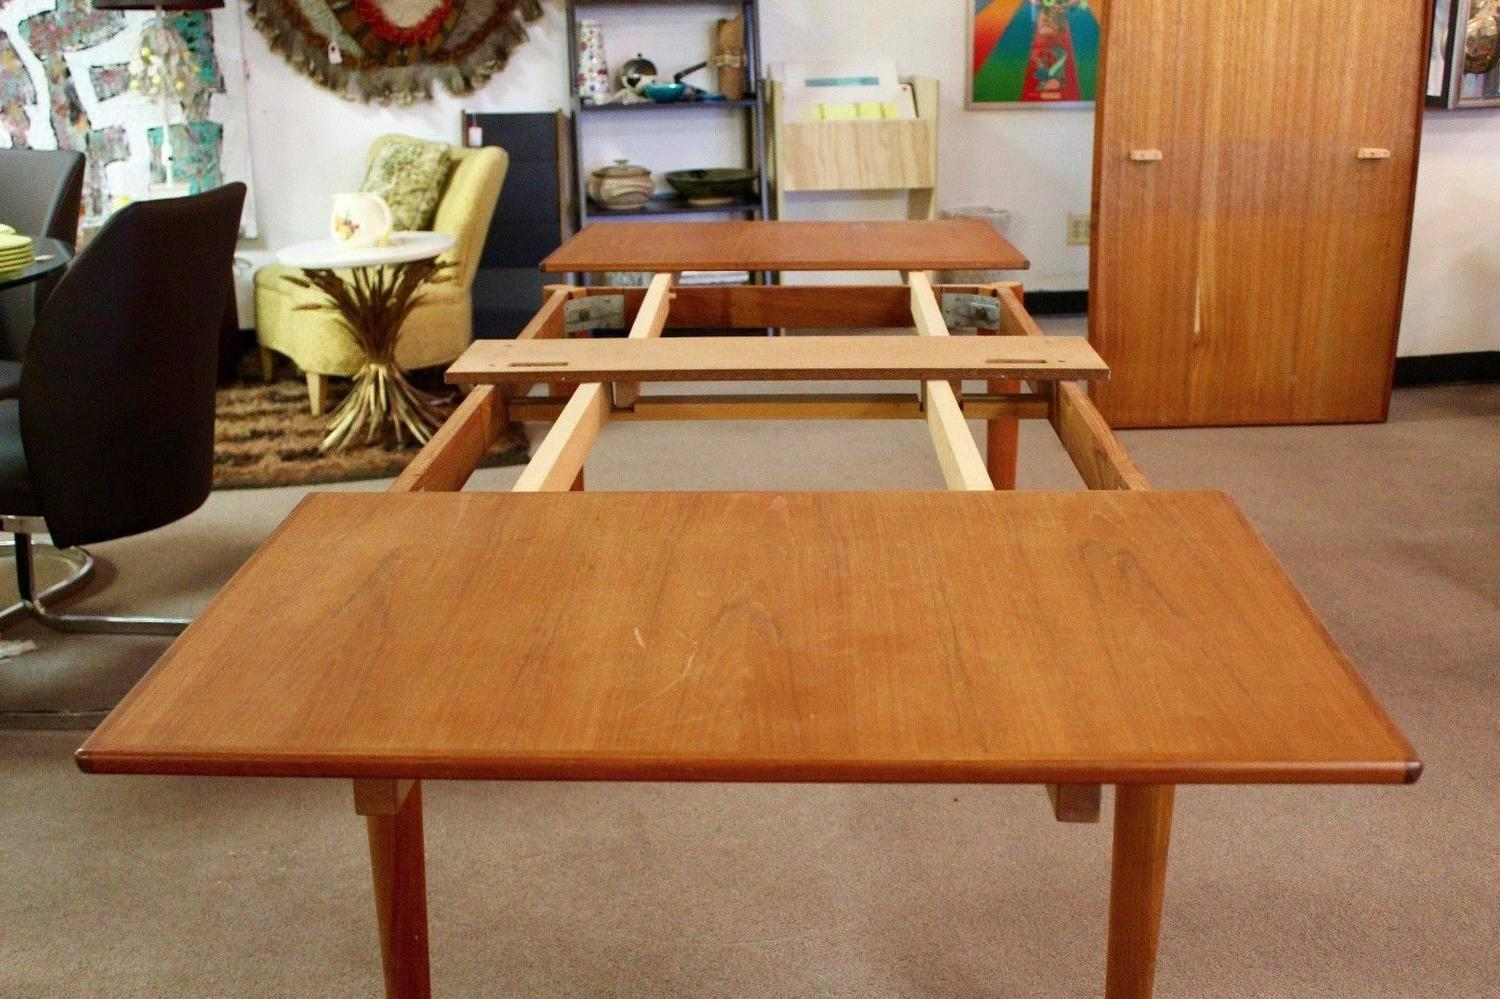 Used danish furniture uploaded by admin in modern furniture category - Mid Century Modern Danish Teak Niels Moller Expandable Dining Table